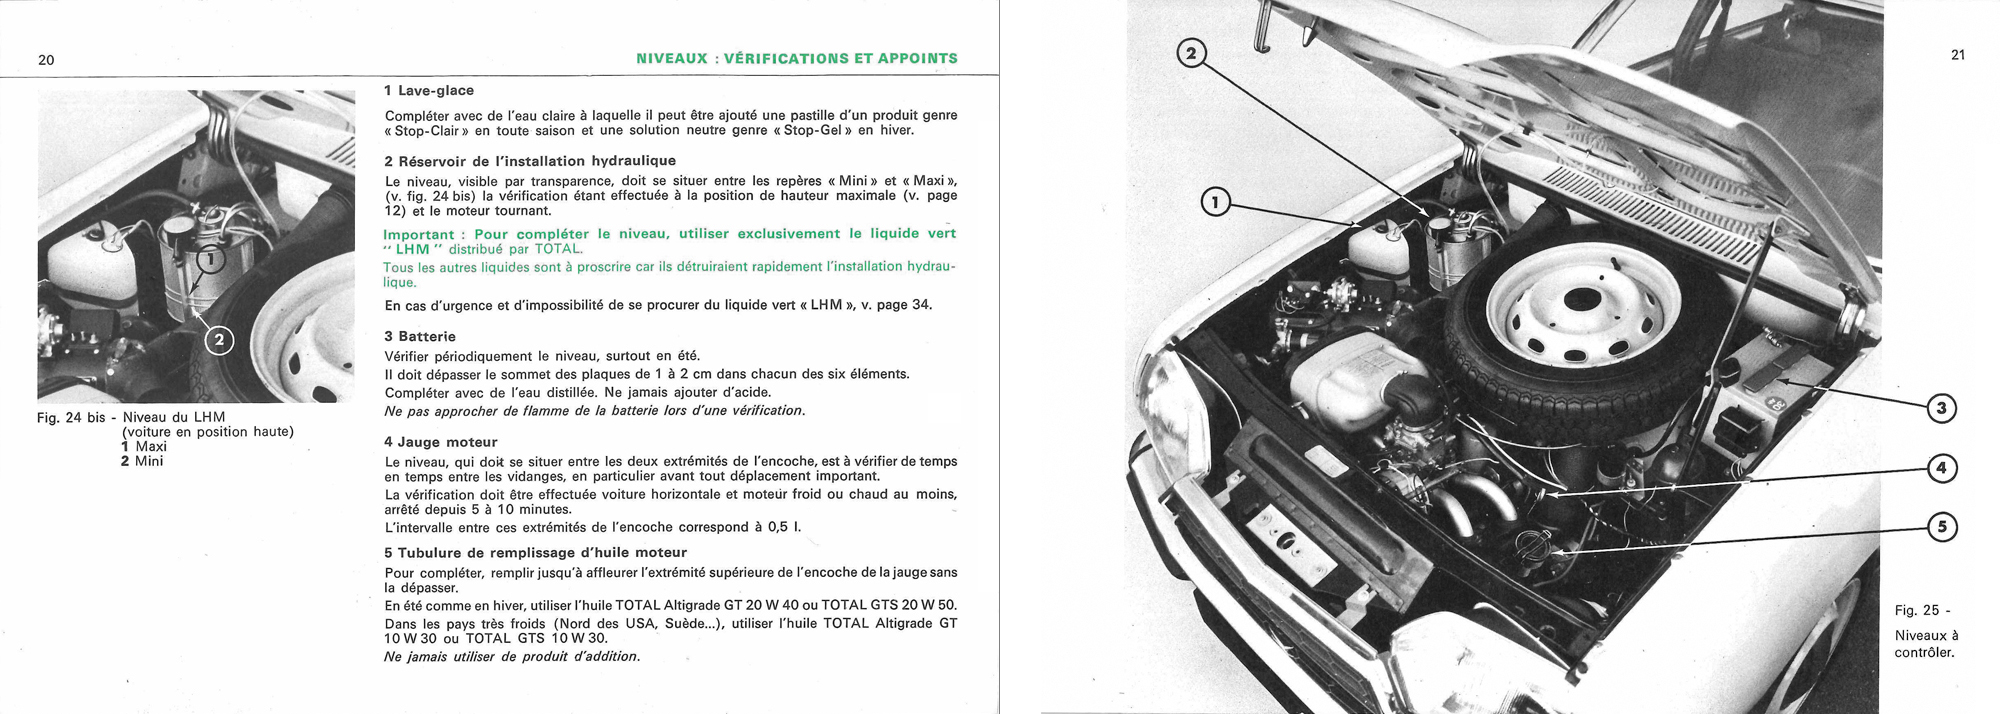 1970 Citroën GS Notice d'emploi (owner's manual) #1